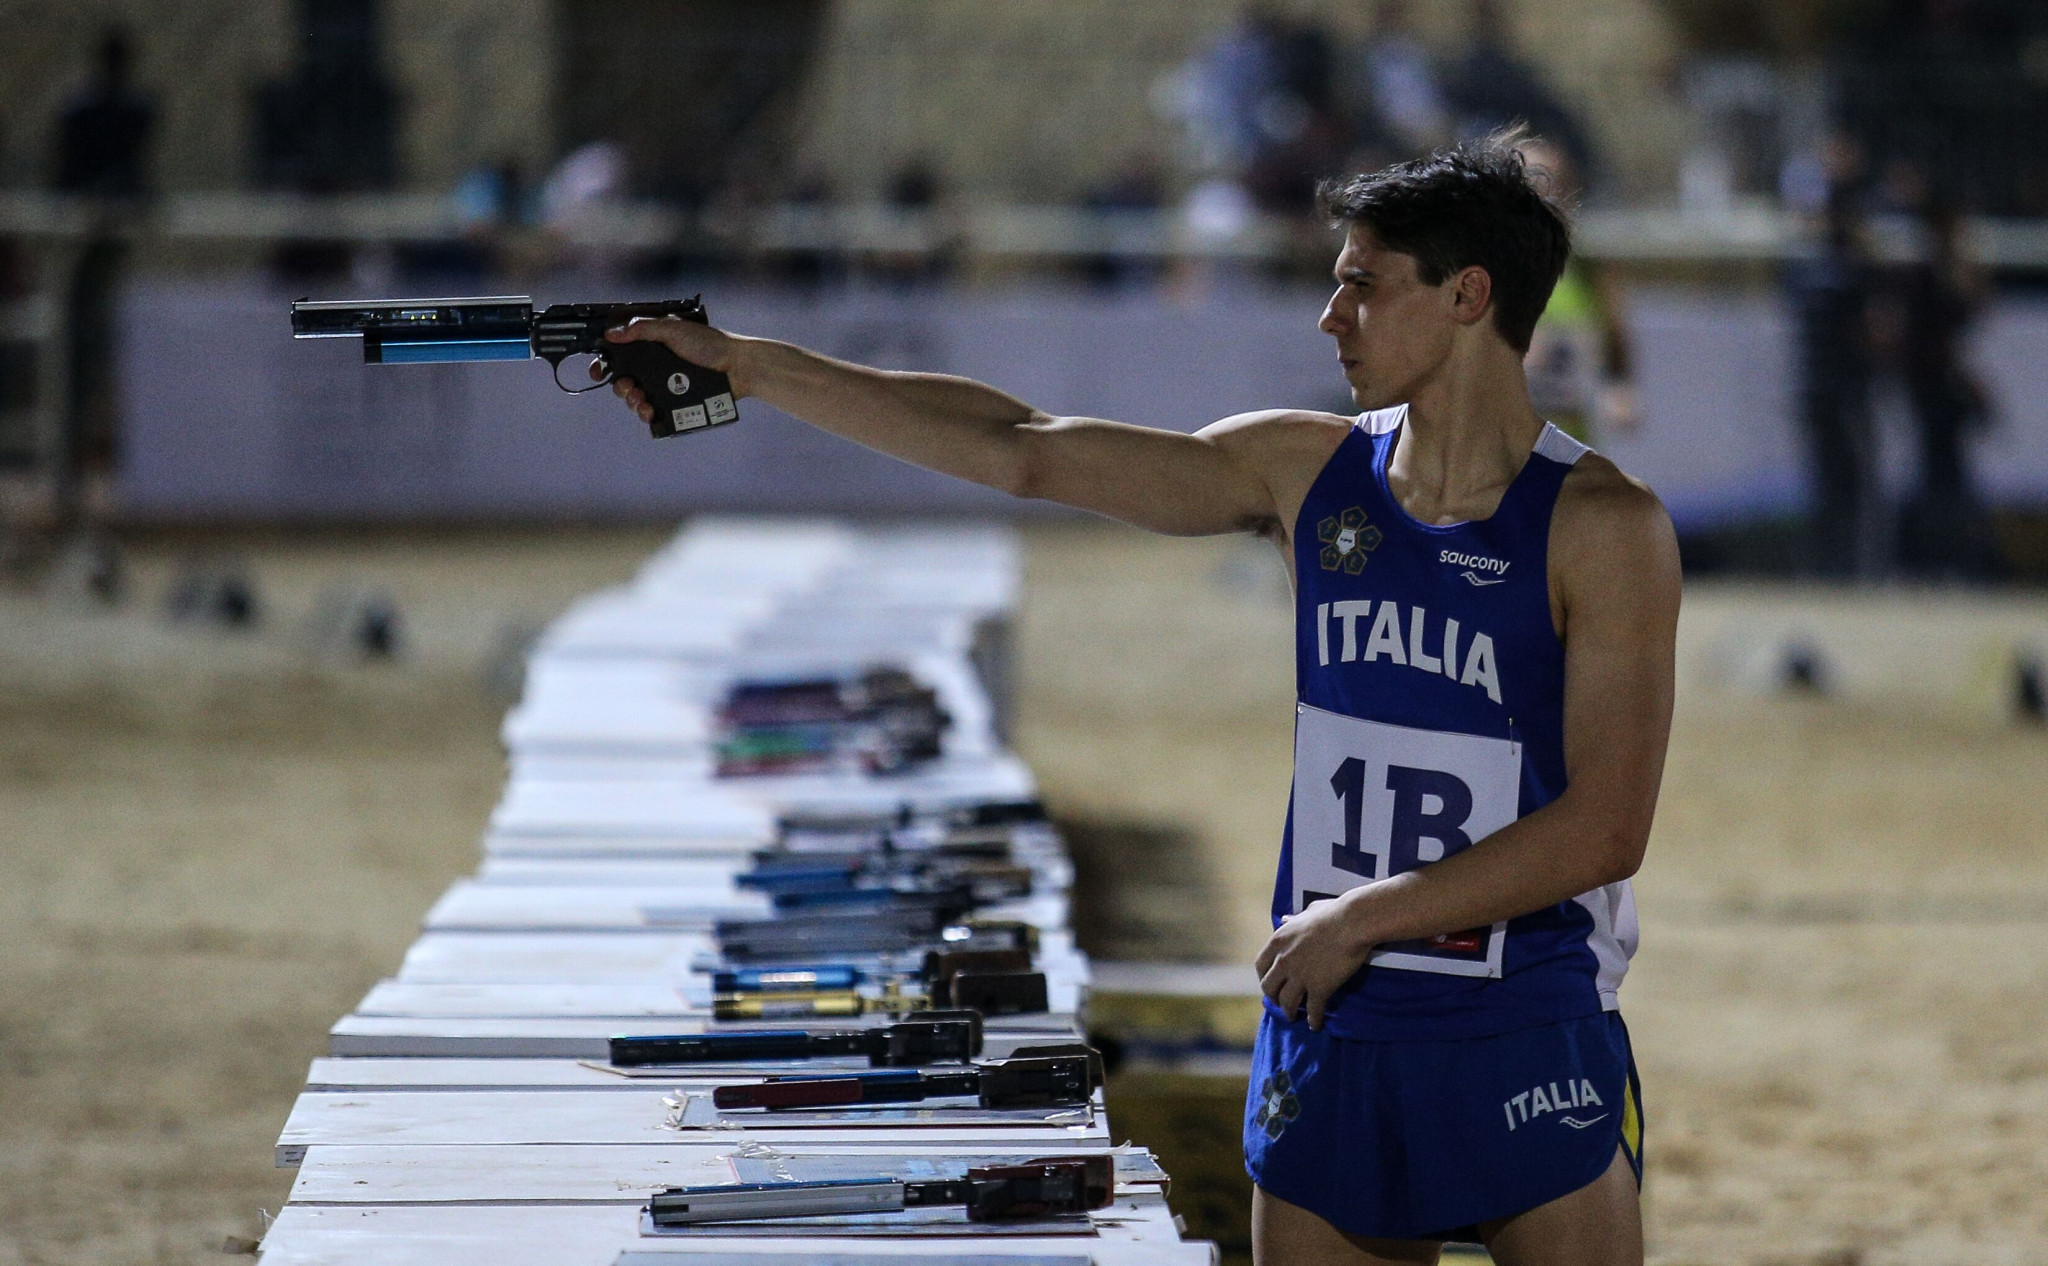 Gianluca Micozzi's gold medal in the mixed relay at the UIPM World Cup in Cairo, alongside Gloria Tocchi, represented a breakthrough at senior level for the Italian youngster ©UIPM